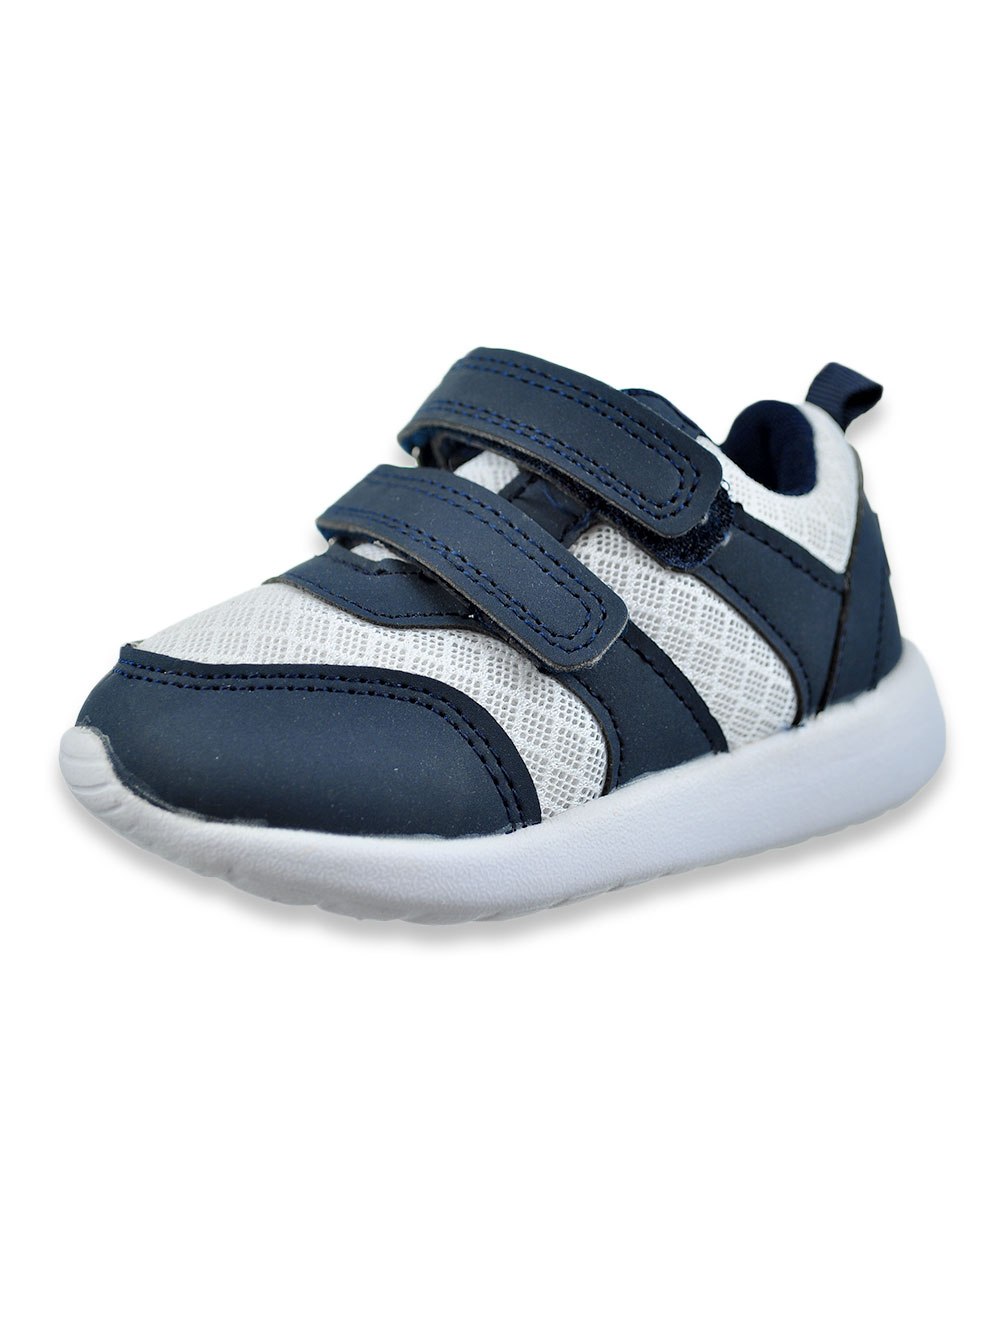 Baby Boys' Color Block Sneakers